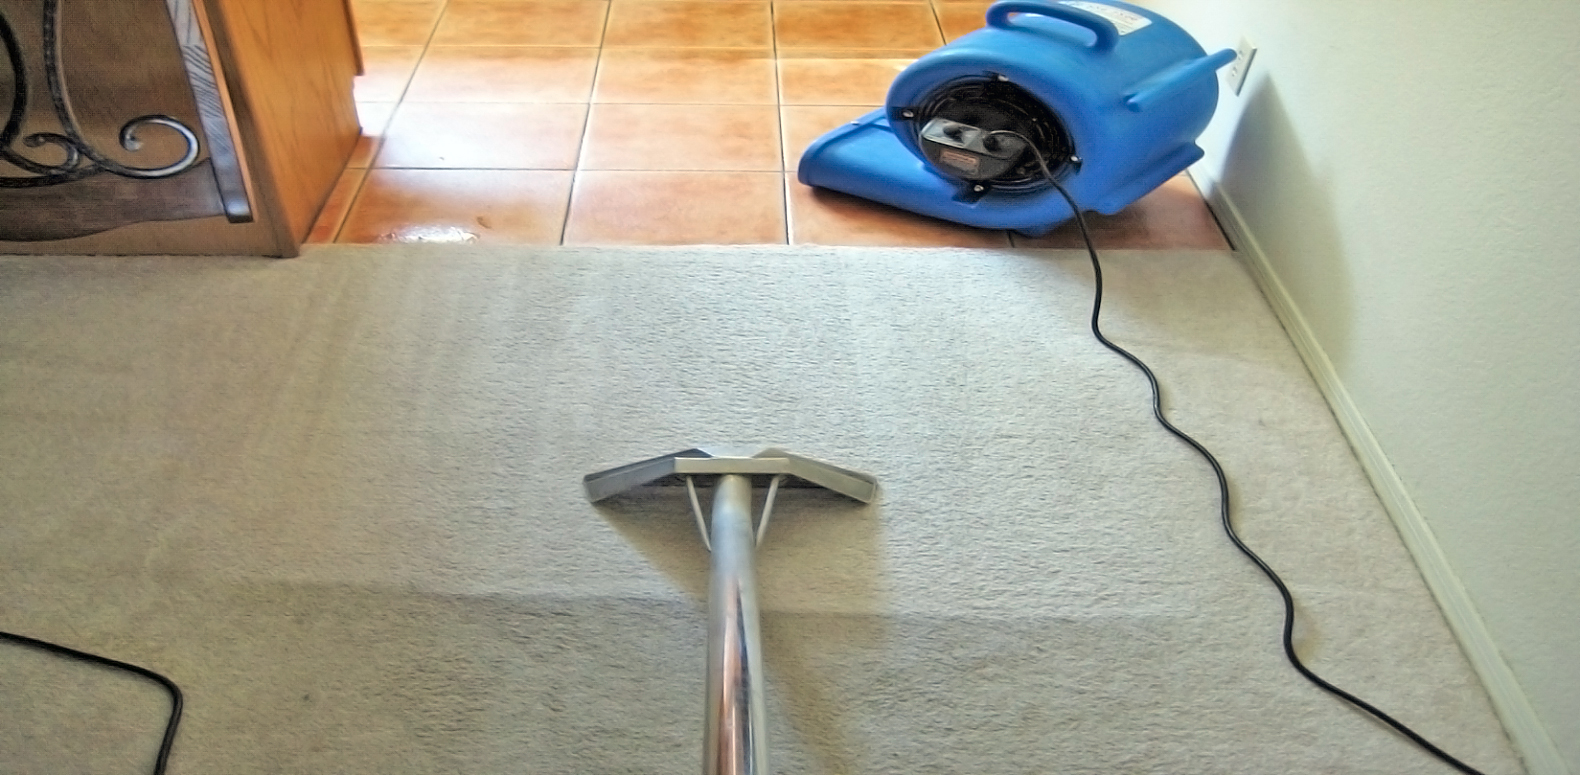 Carpet Cleaning Sydney Carpet Cleaning 1800 284 036